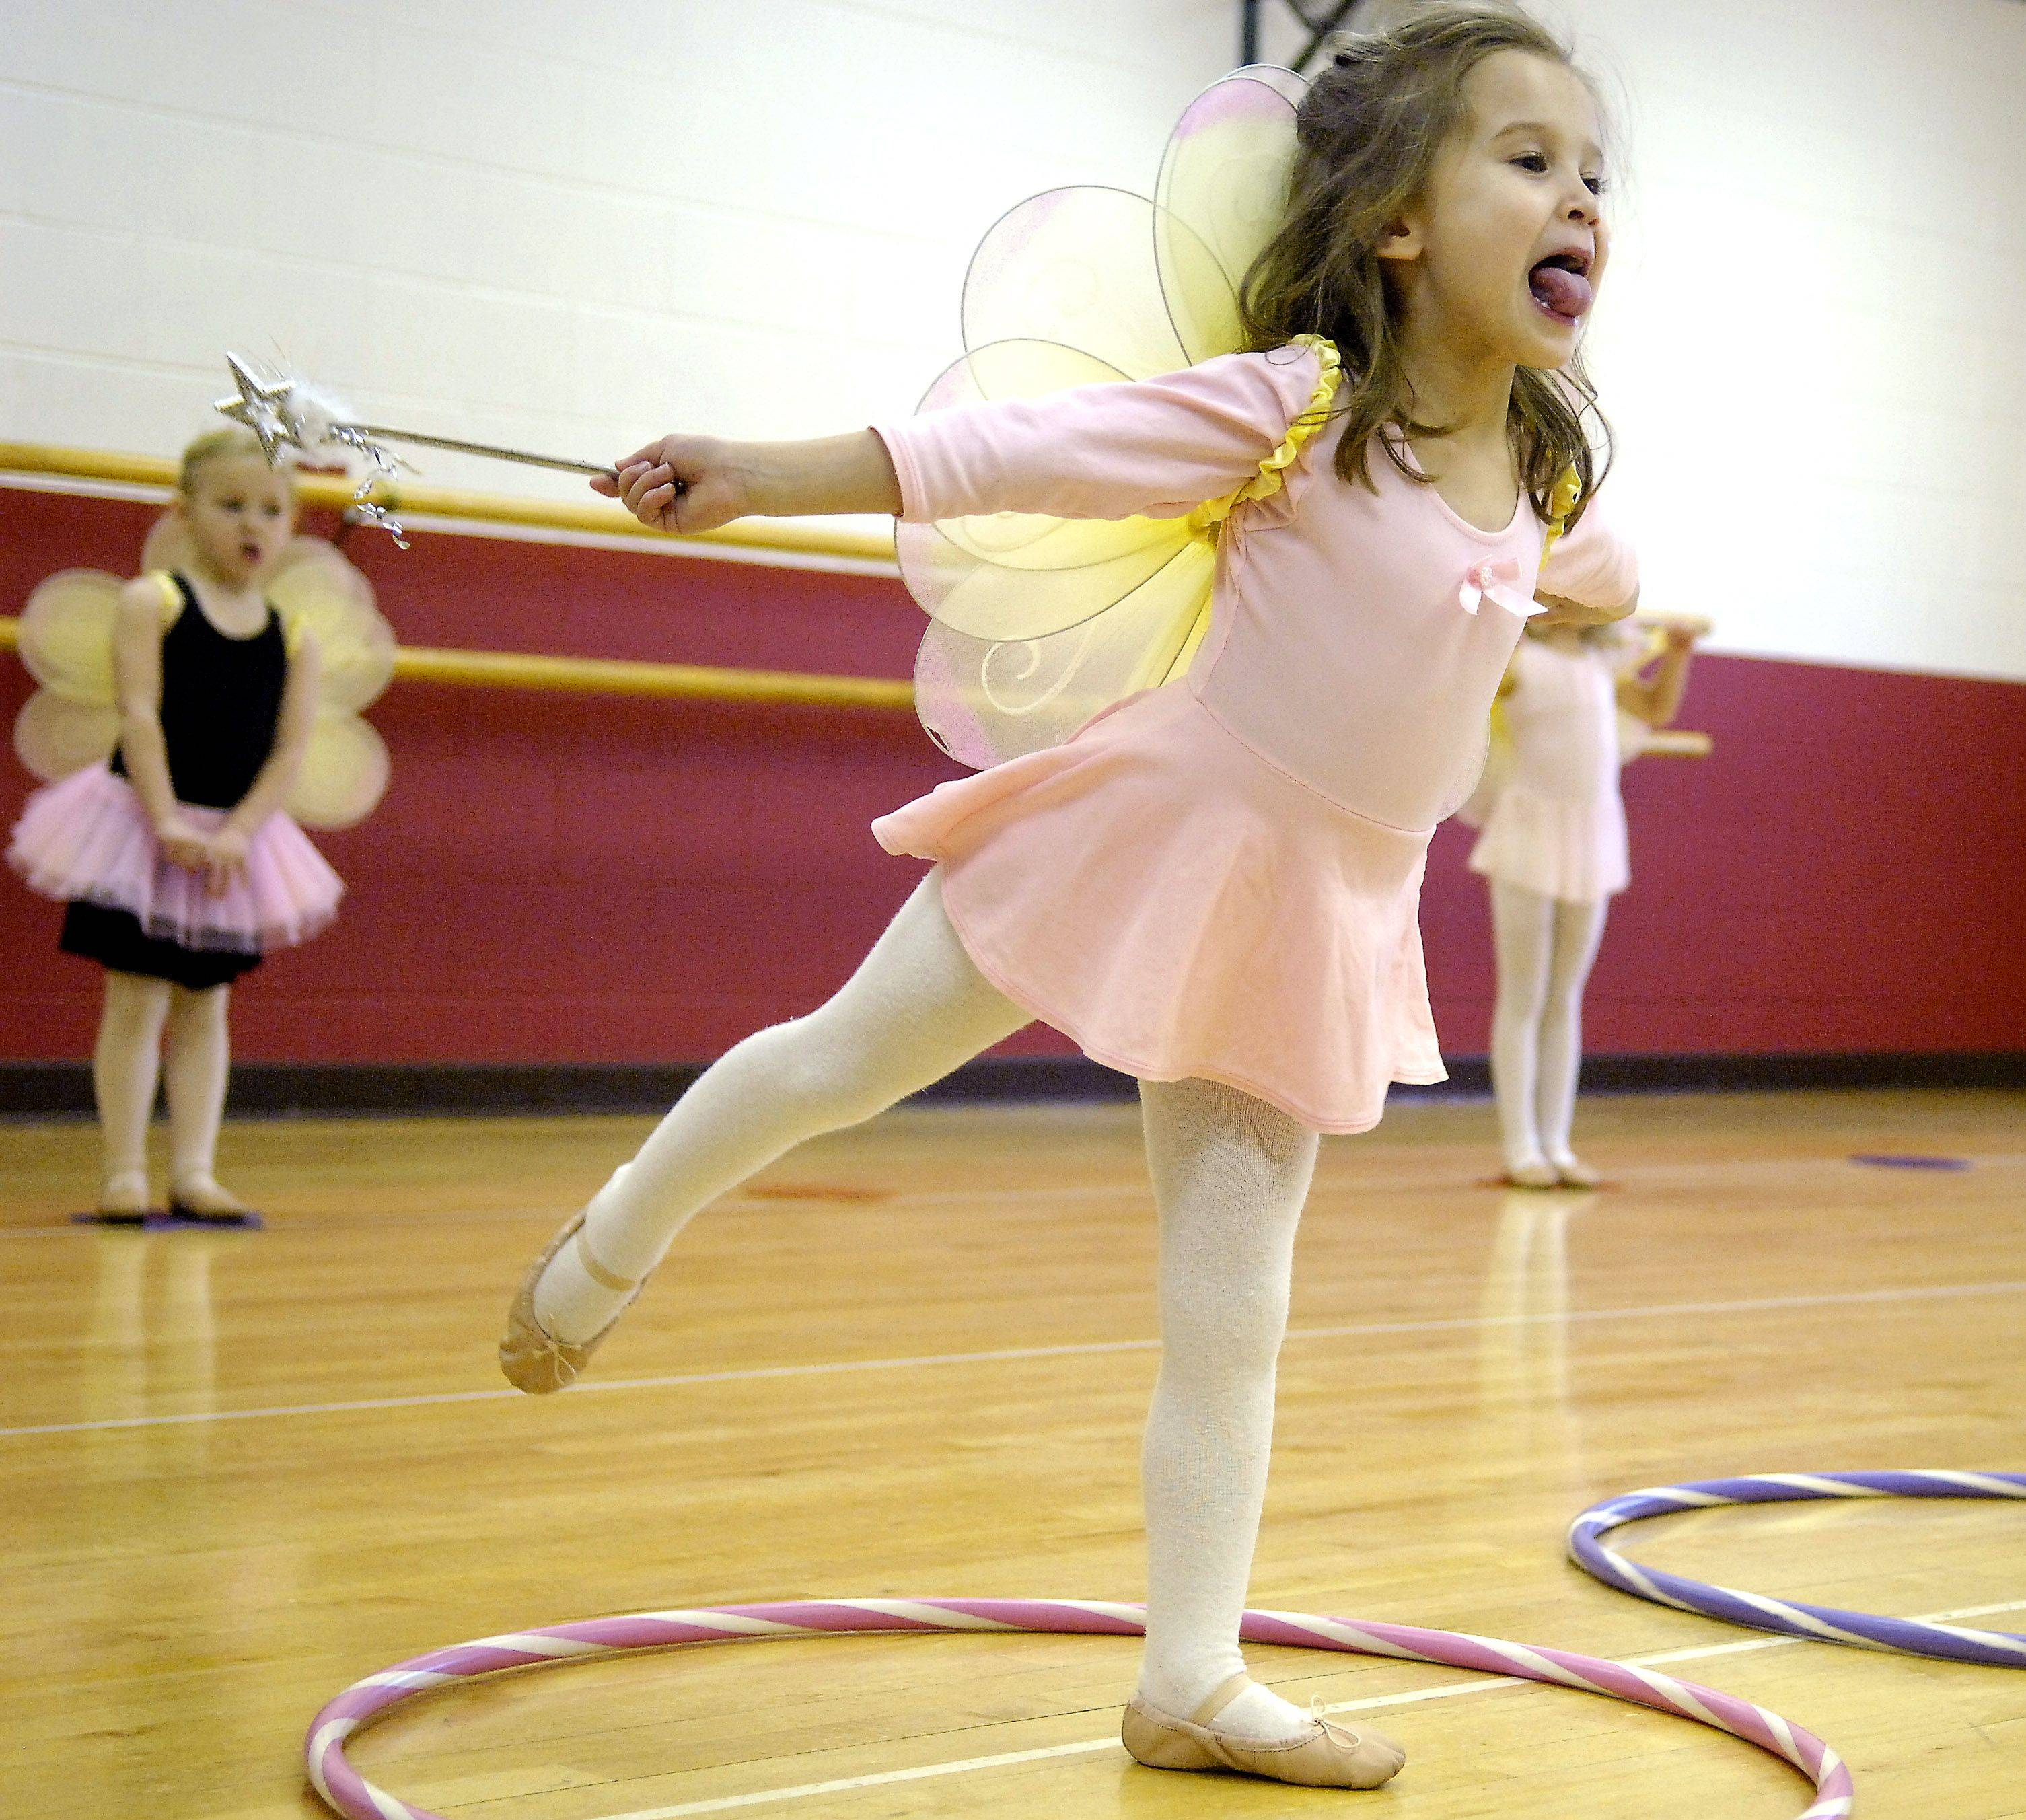 Four-year-old Alexandra Lee of Geneva practices her arabesques during a pre-ballet class at the Sunset Racquetball and Fitness Center in Geneva Wednesday. The tongue sticking out isn't normally part of the position, but she added her own little flourish.